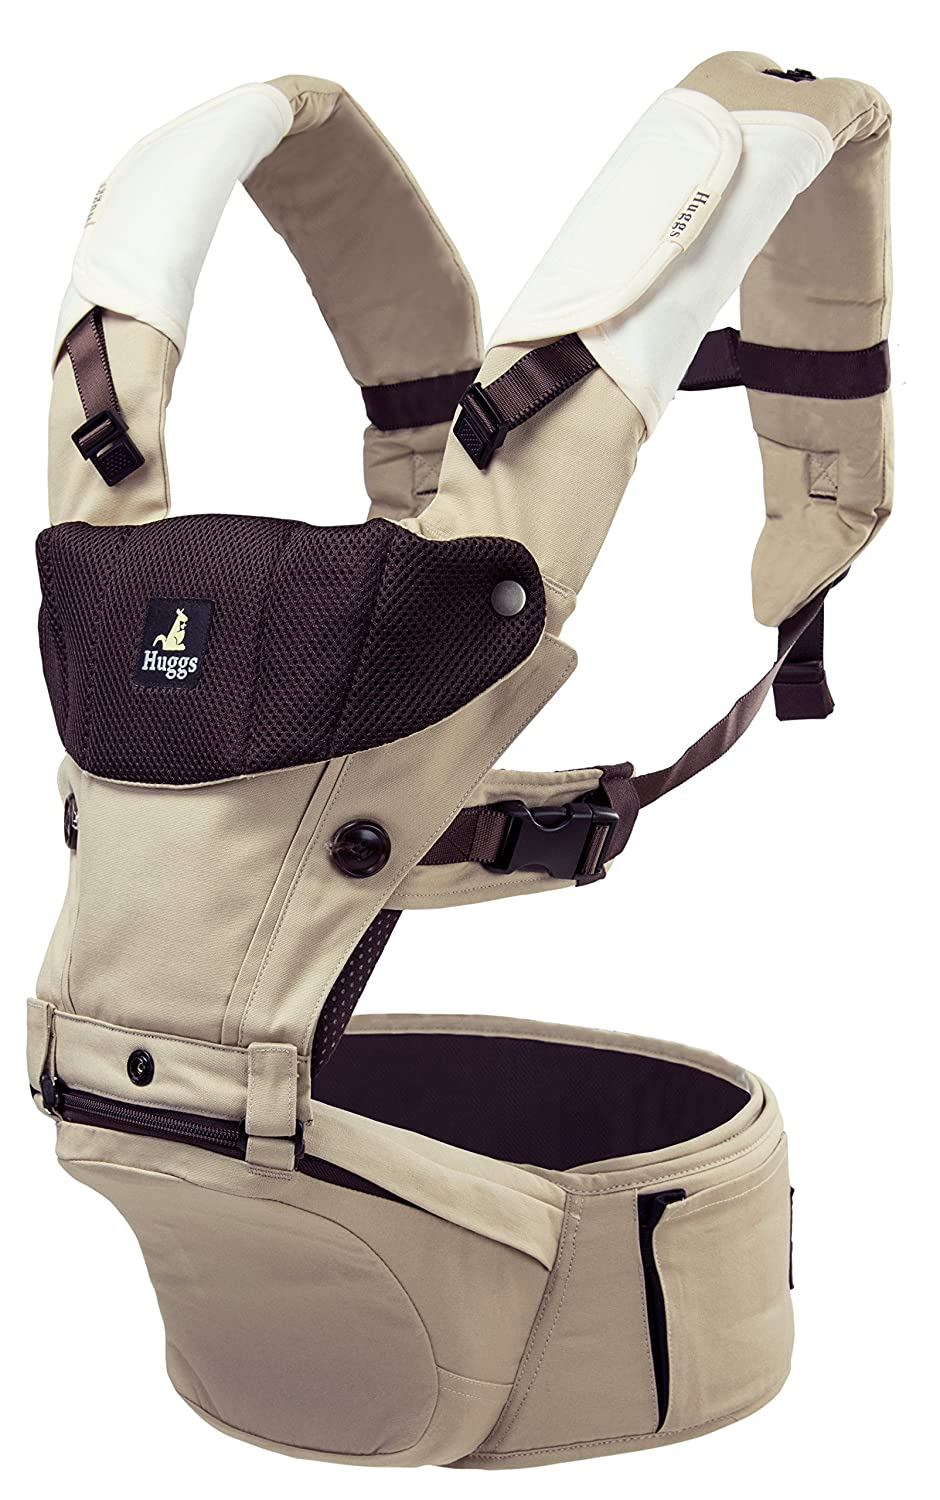 Abiie HUGGS Baby Carrier Hip Seat - Approved by U.S. Safety Standards - Healthy Sitting Position (M-Position) - Front Facing, Hip Hugger, Back Baby Carrier - 100% Cotton, 2-Year Warranty (Grey) 101010065